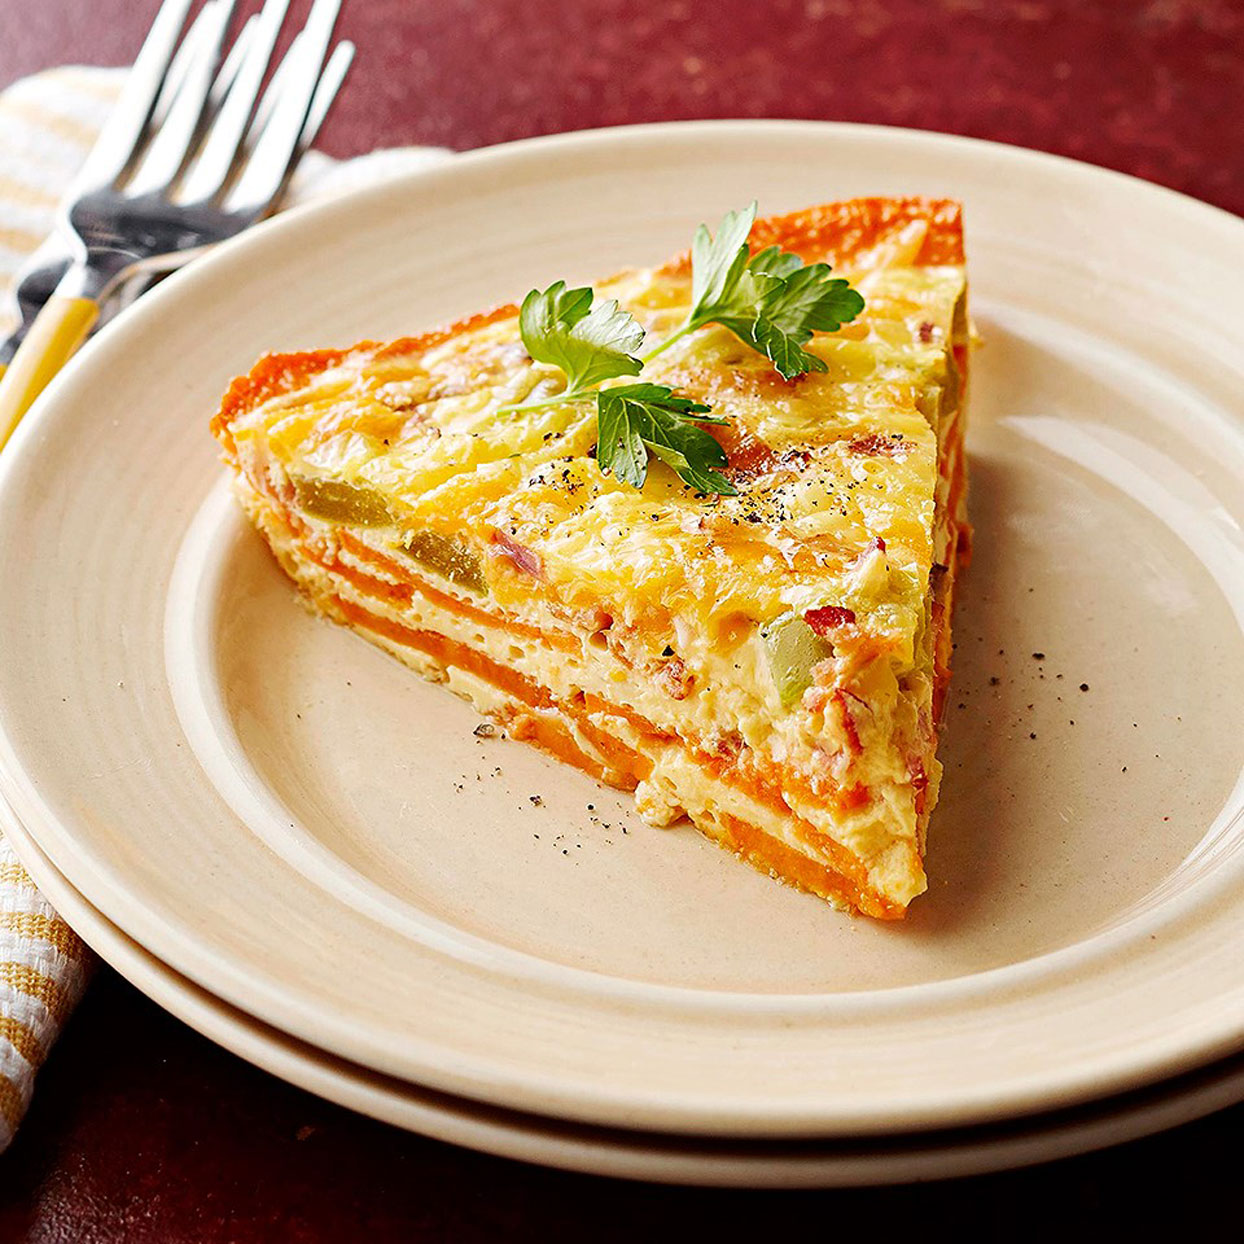 sweet-potato-crusted-quiche-on-white-plate